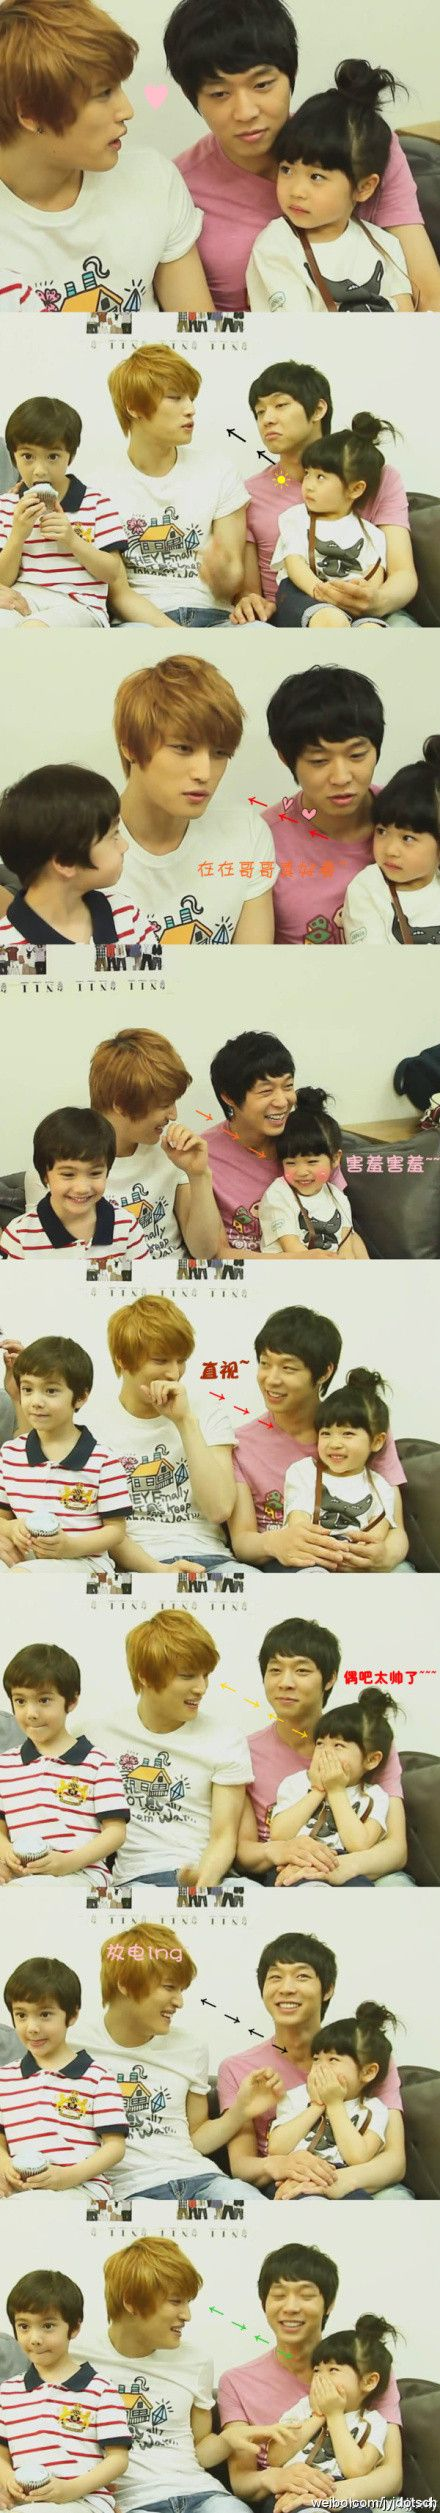 omg this is too cute *____*~~~~~~This is why JJ needs to have babies. How adorable is this?